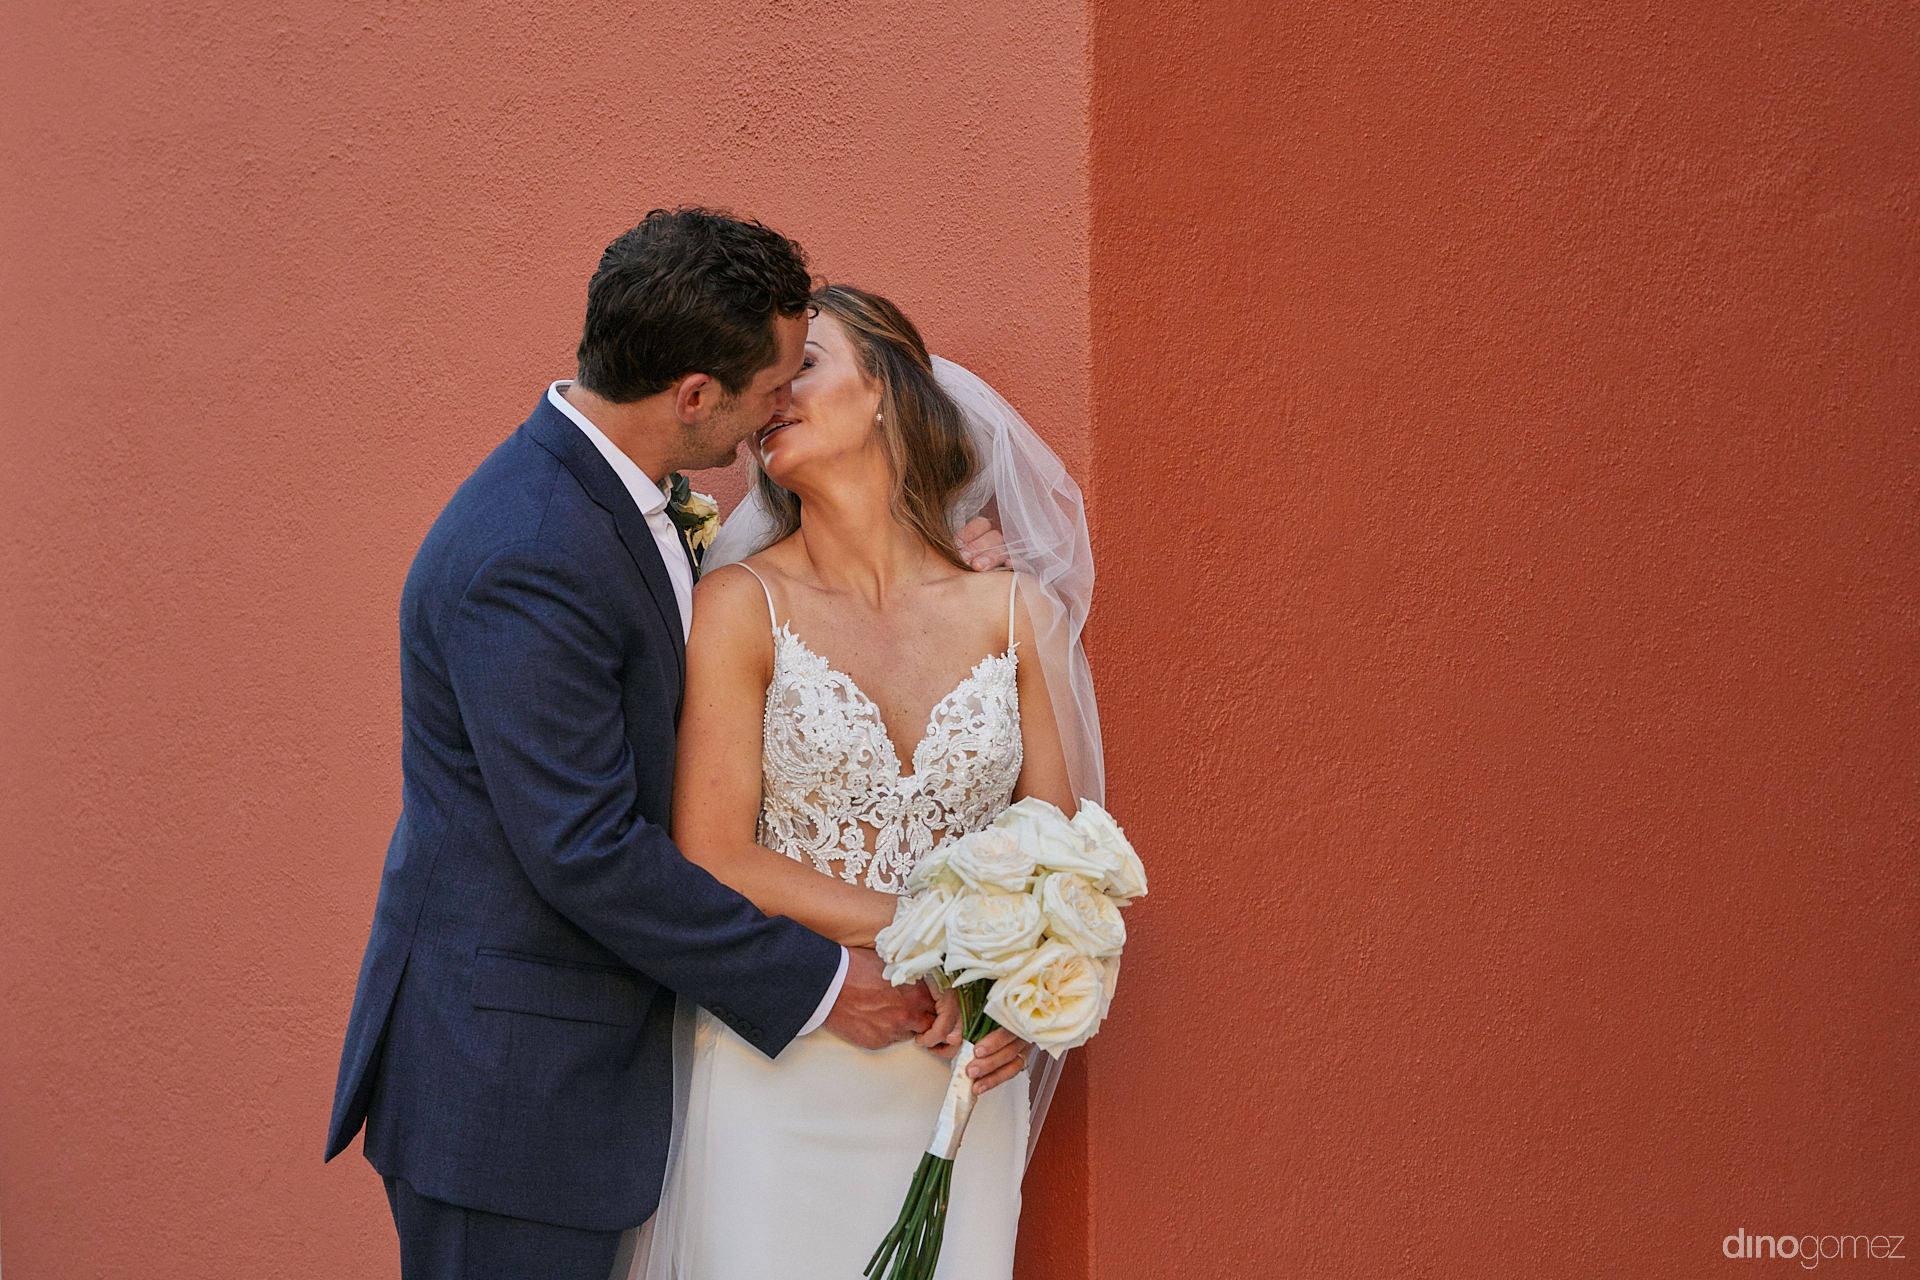 Los Cabos Wedding Photographers - Luxury Wedding Photographer In Cabo Dino Gomez - C&T